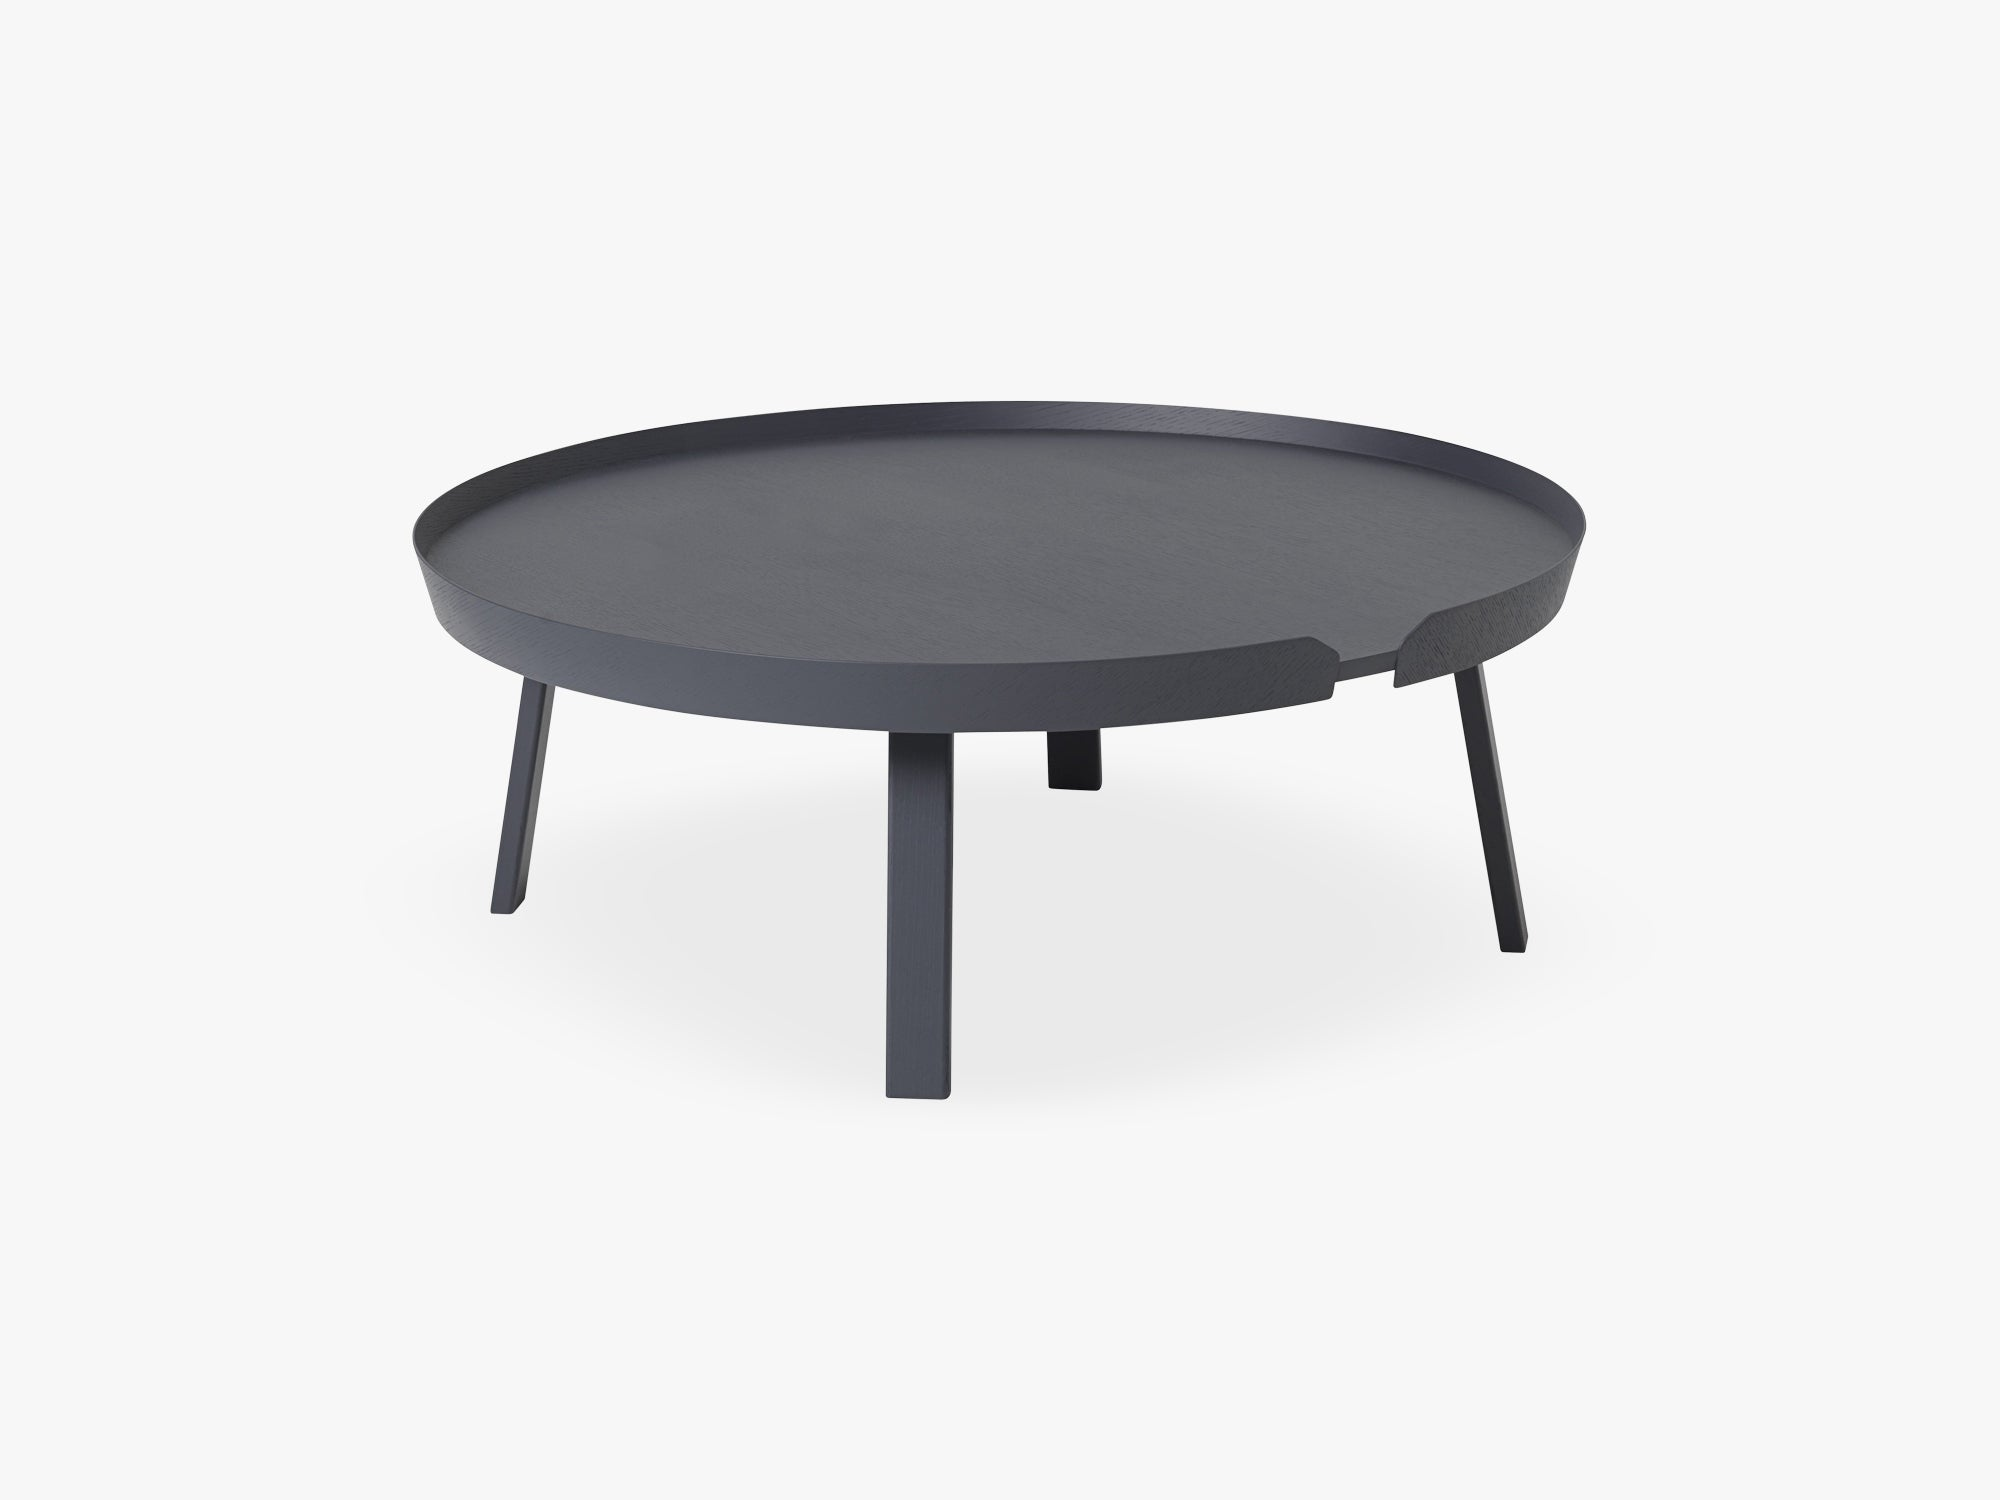 Around Coffee Table - Xl - Extra Large, Anthracite fra Muuto